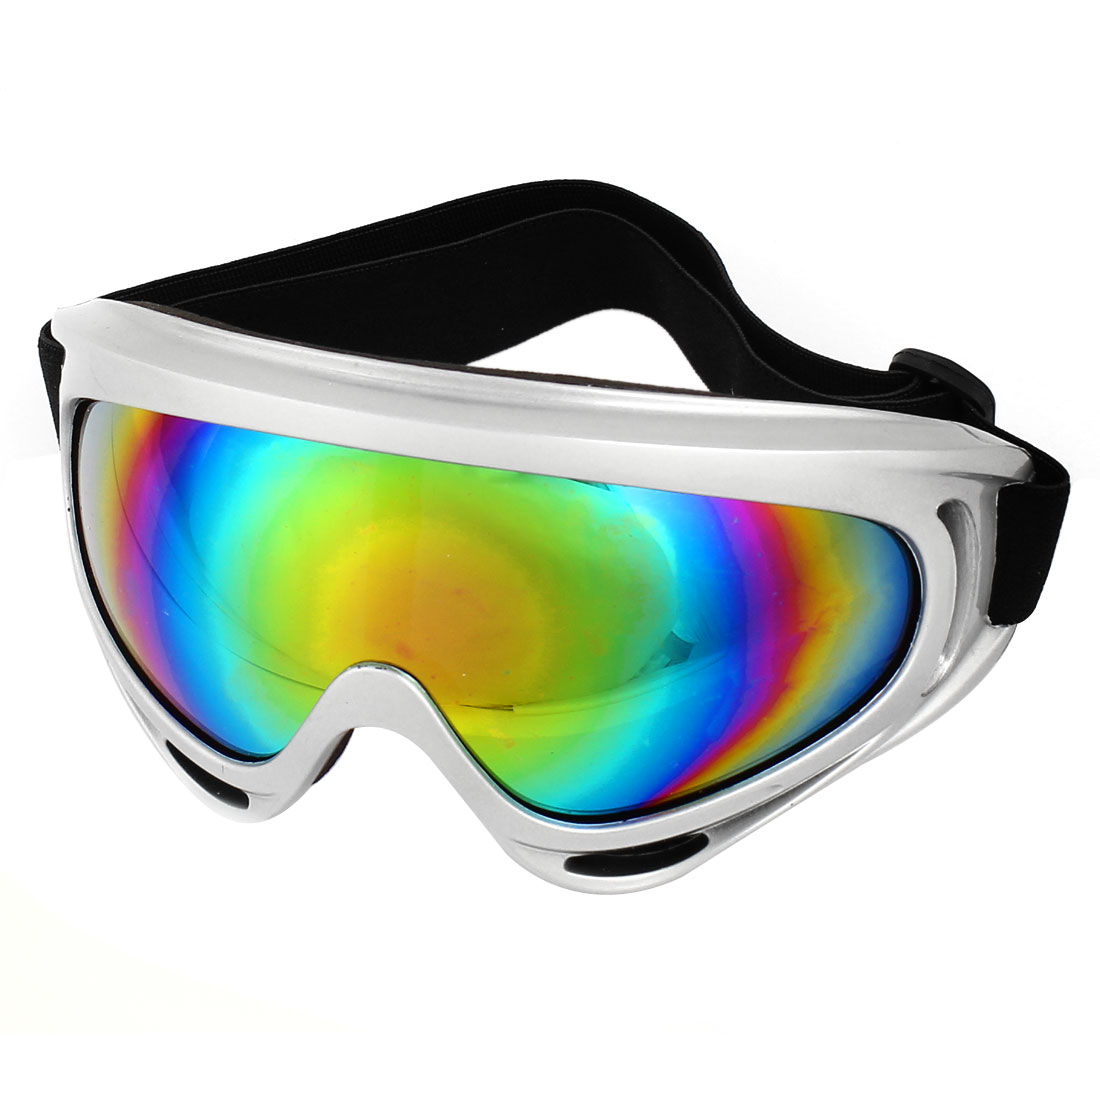 Unique Bargains Silver Tone Frame Coloured Len Protective Adult Sport Snowboard Snow Ski Goggles